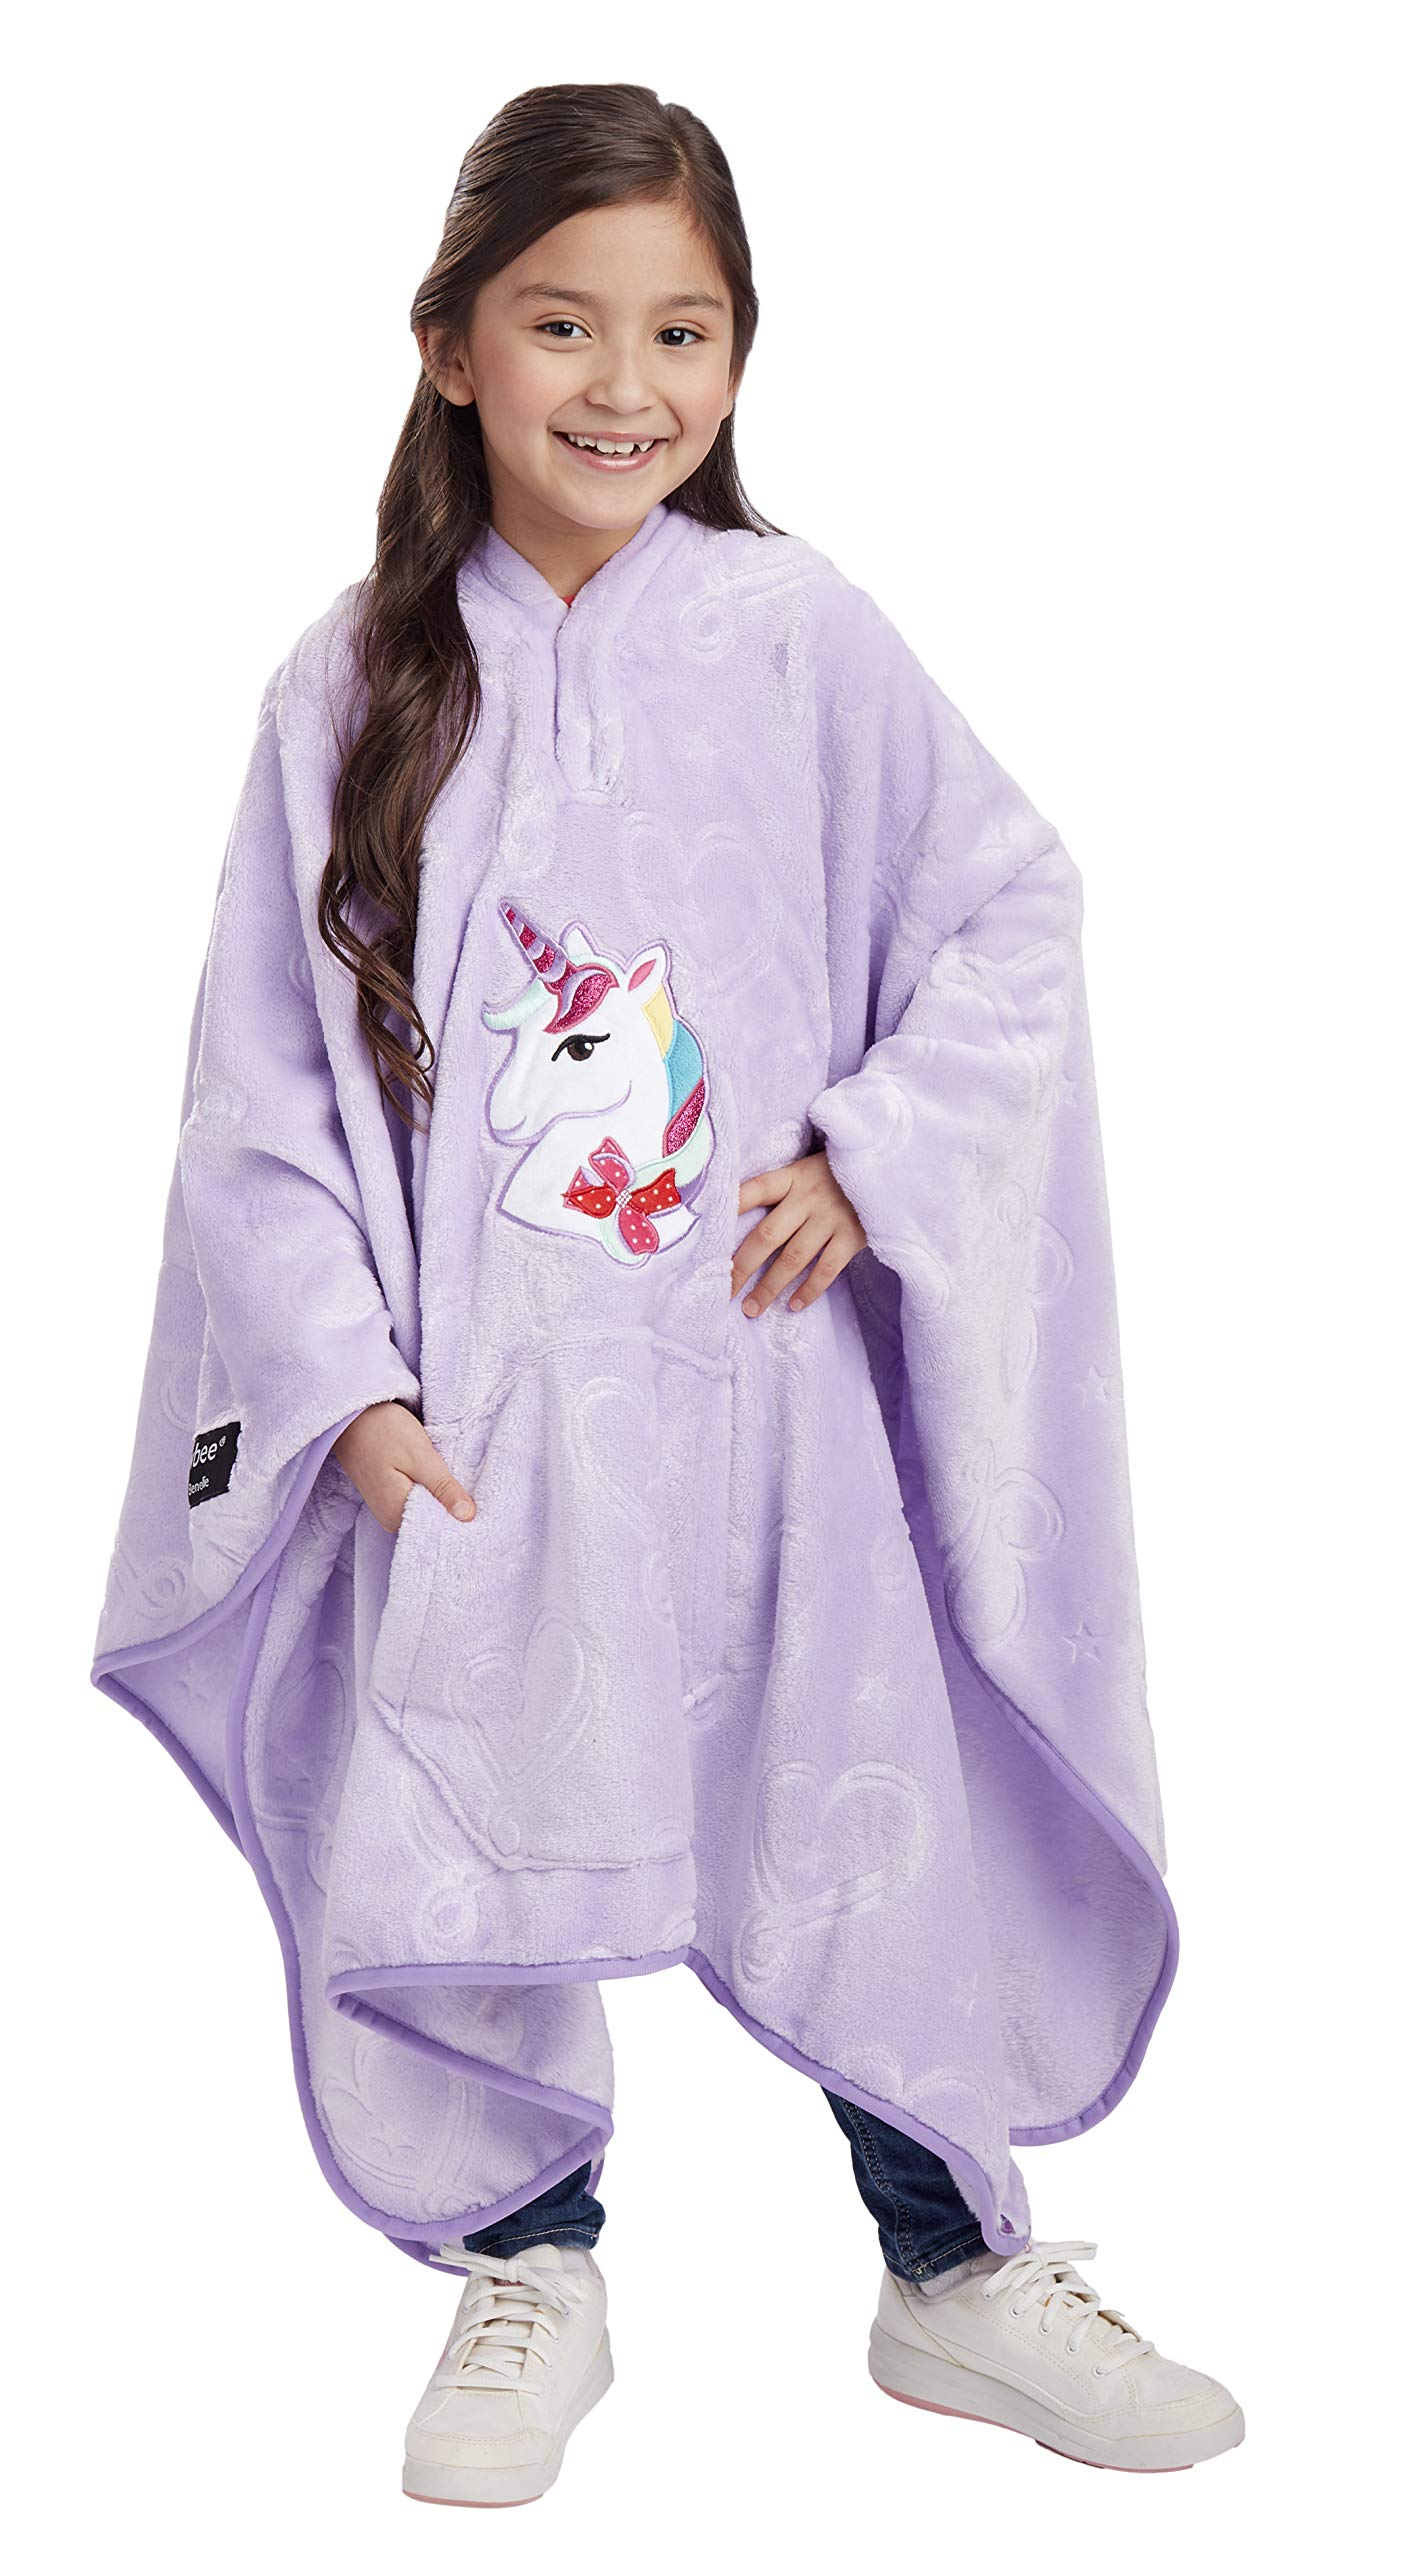 Jay Franco Nickelodeon JoJo Siwa Unicorn Throwbee - 2-in-1 Wearable Kids Plush Throw Blanket Poncho - Fade Resistant Polyester, 50'' x 60'' - (Offical Nickelodeon Product) by Jay Franco